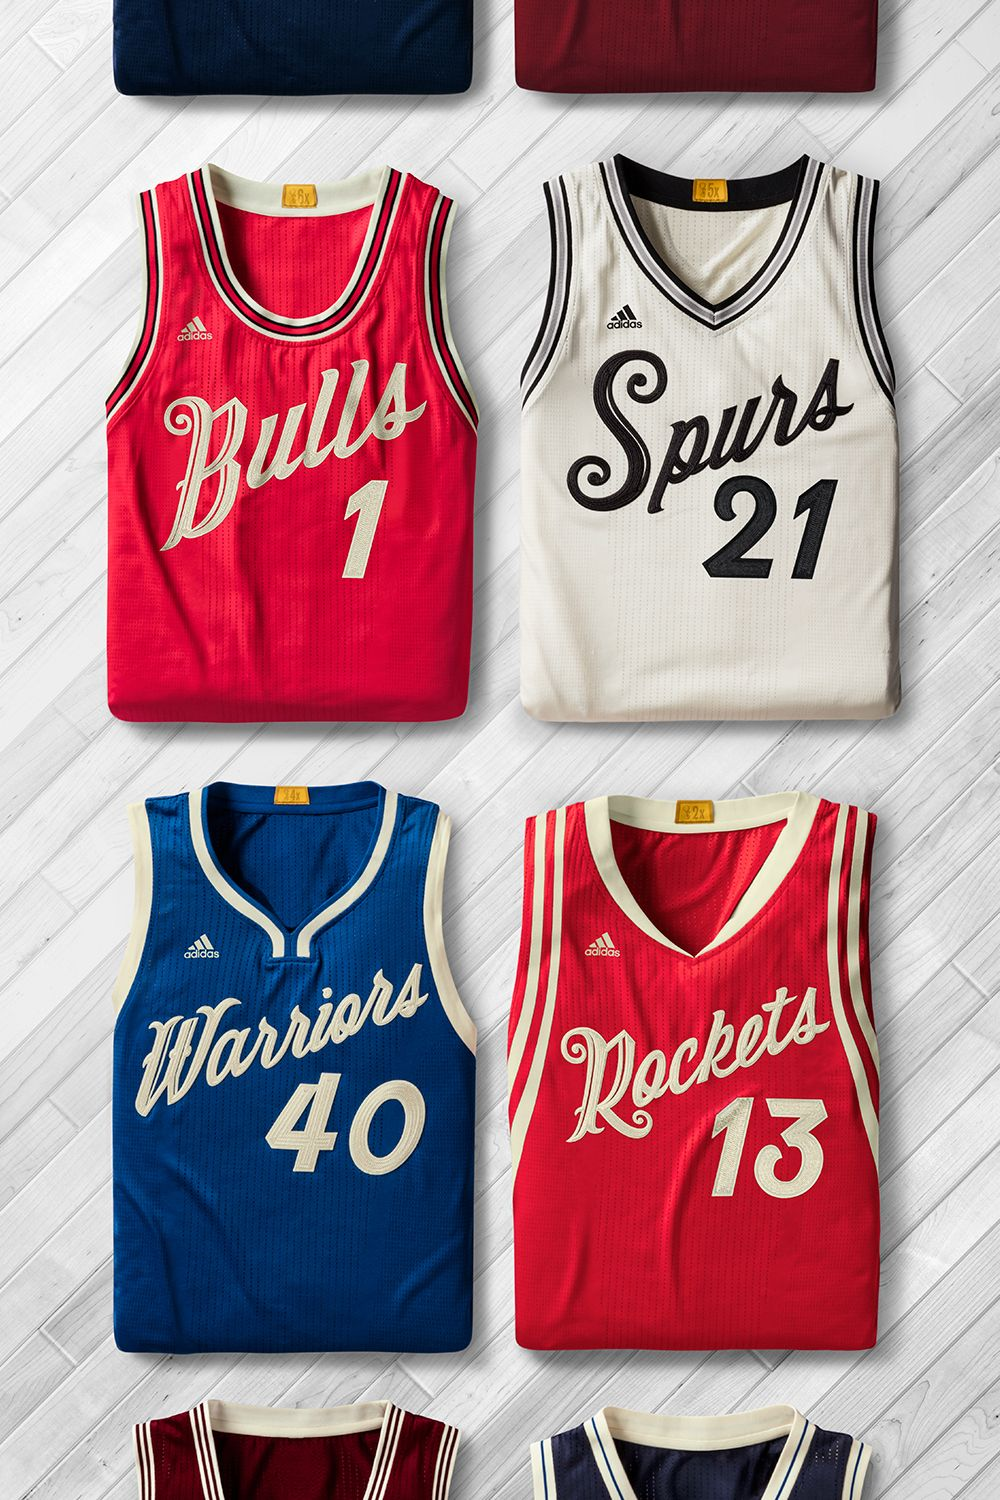 bc64dbb3ad3e NBA Christmas Day Jerseys 2015 - Bulls Spurs Warriors Rockets ...